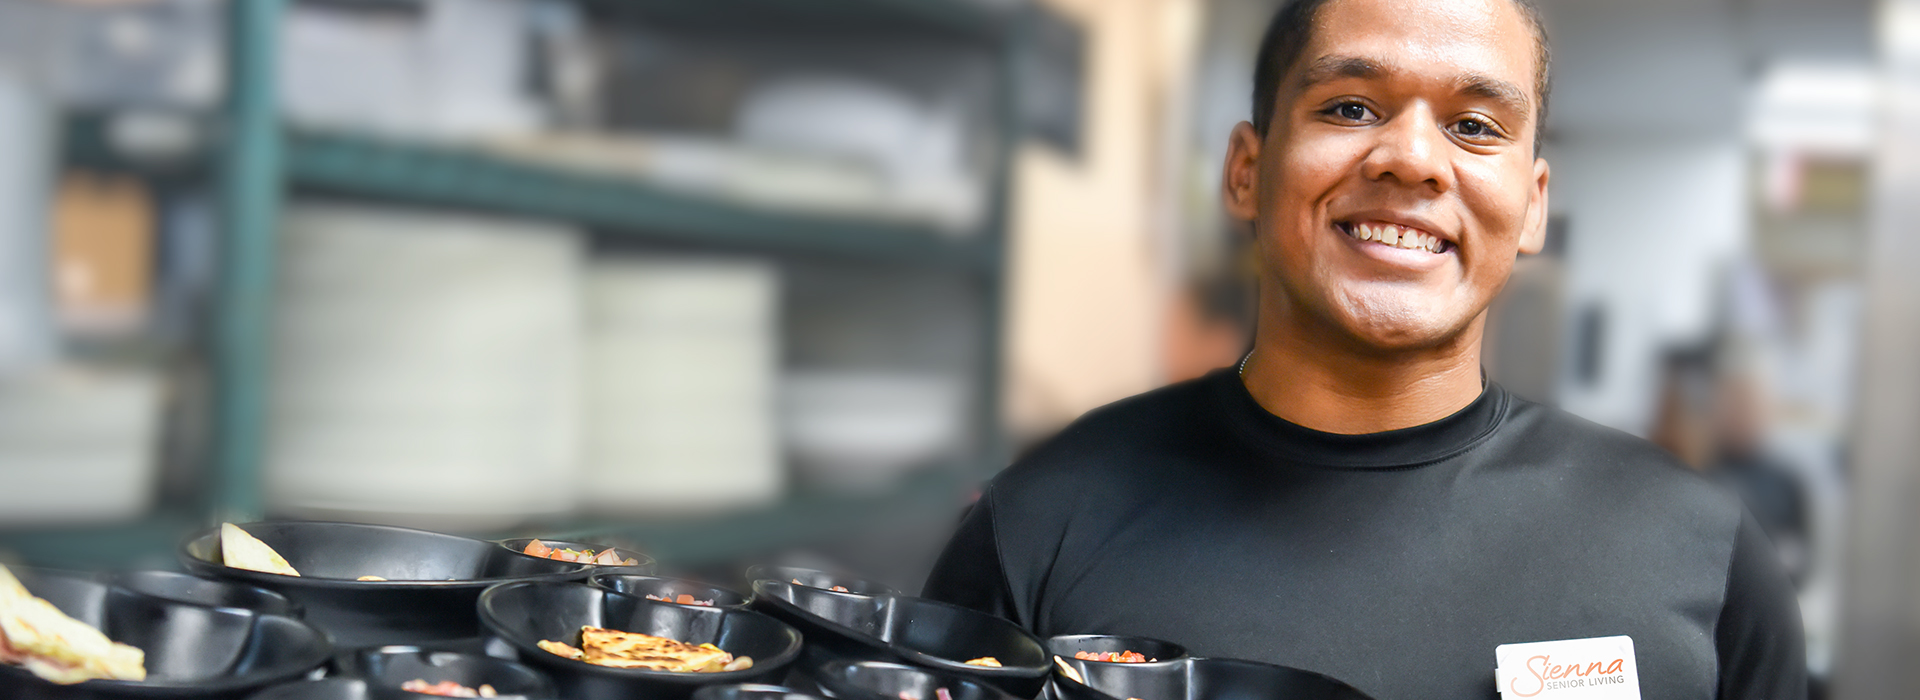 image of a male server holding a tray of food and smiling towards the camera